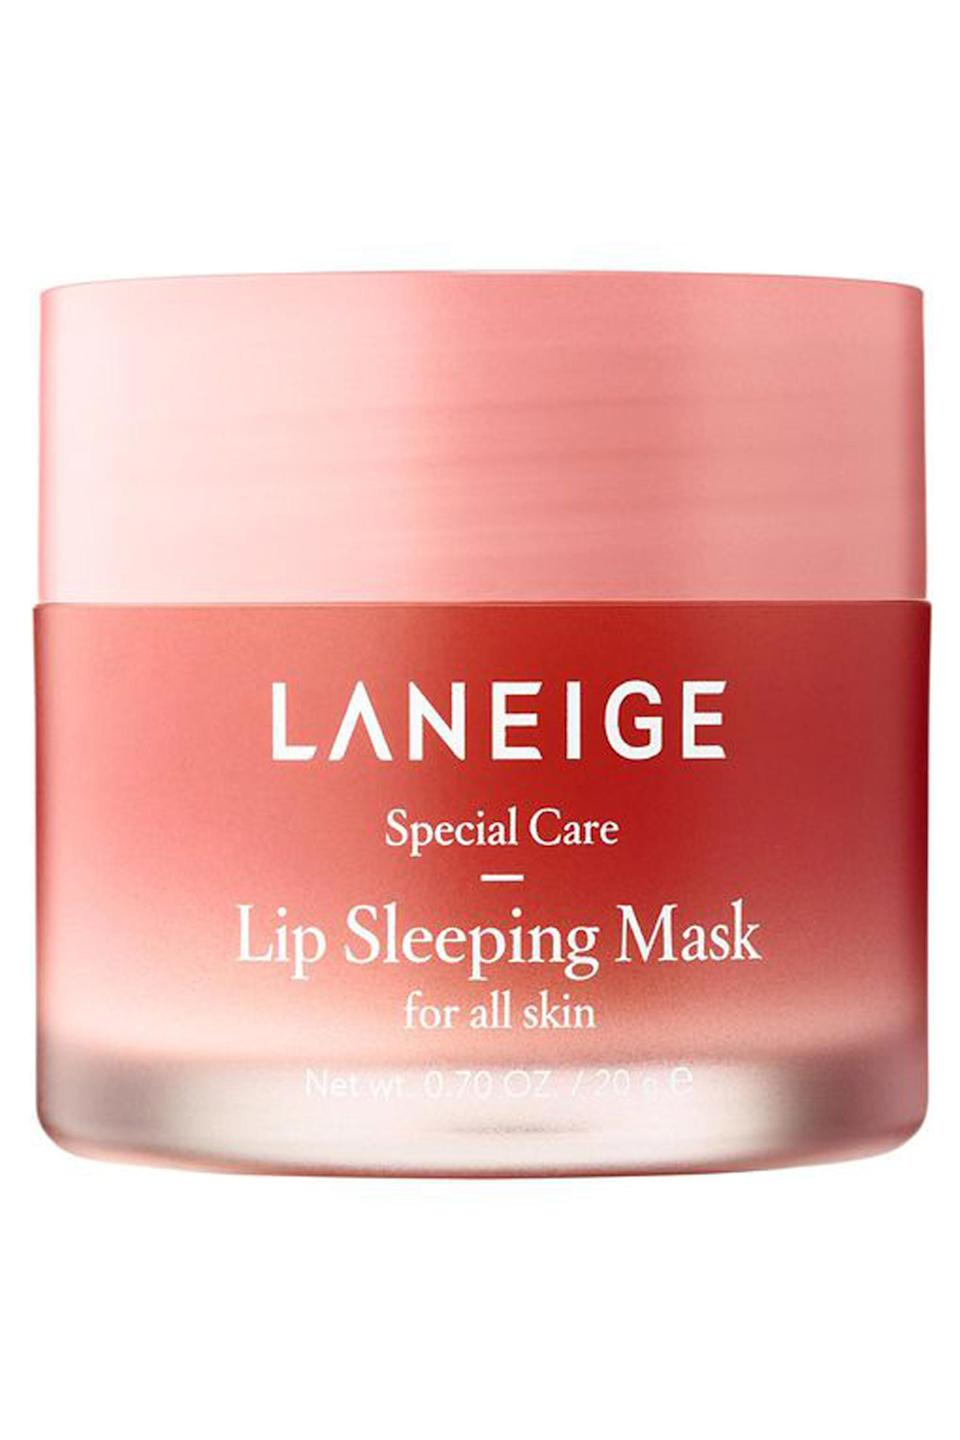 """<p><strong>LANEIGE</strong></p><p>sephora.com</p><p><strong>$22.00</strong></p><p><a href=""""https://go.redirectingat.com?id=74968X1596630&url=https%3A%2F%2Fwww.sephora.com%2Fproduct%2Flip-sleeping-mask-P420652&sref=https%3A%2F%2Fwww.cosmopolitan.com%2Fstyle-beauty%2Fbeauty%2Fg4577%2Fvalentines-day-gifts-to-give-yourself%2F"""" rel=""""nofollow noopener"""" target=""""_blank"""" data-ylk=""""slk:Shop Now"""" class=""""link rapid-noclick-resp"""">Shop Now</a></p><p>You might think the whole masking thing is getting out of control, but don't write this one off just yet. This lip treatment has <a href=""""https://www.sephora.com/product/lip-sleeping-mask-P420652"""" rel=""""nofollow noopener"""" target=""""_blank"""" data-ylk=""""slk:150K Loves on Sephora"""" class=""""link rapid-noclick-resp"""">150K Loves on Sephora</a> because of <strong>its ability to smooth dry, flaky lips </strong>literally overnight.</p>"""